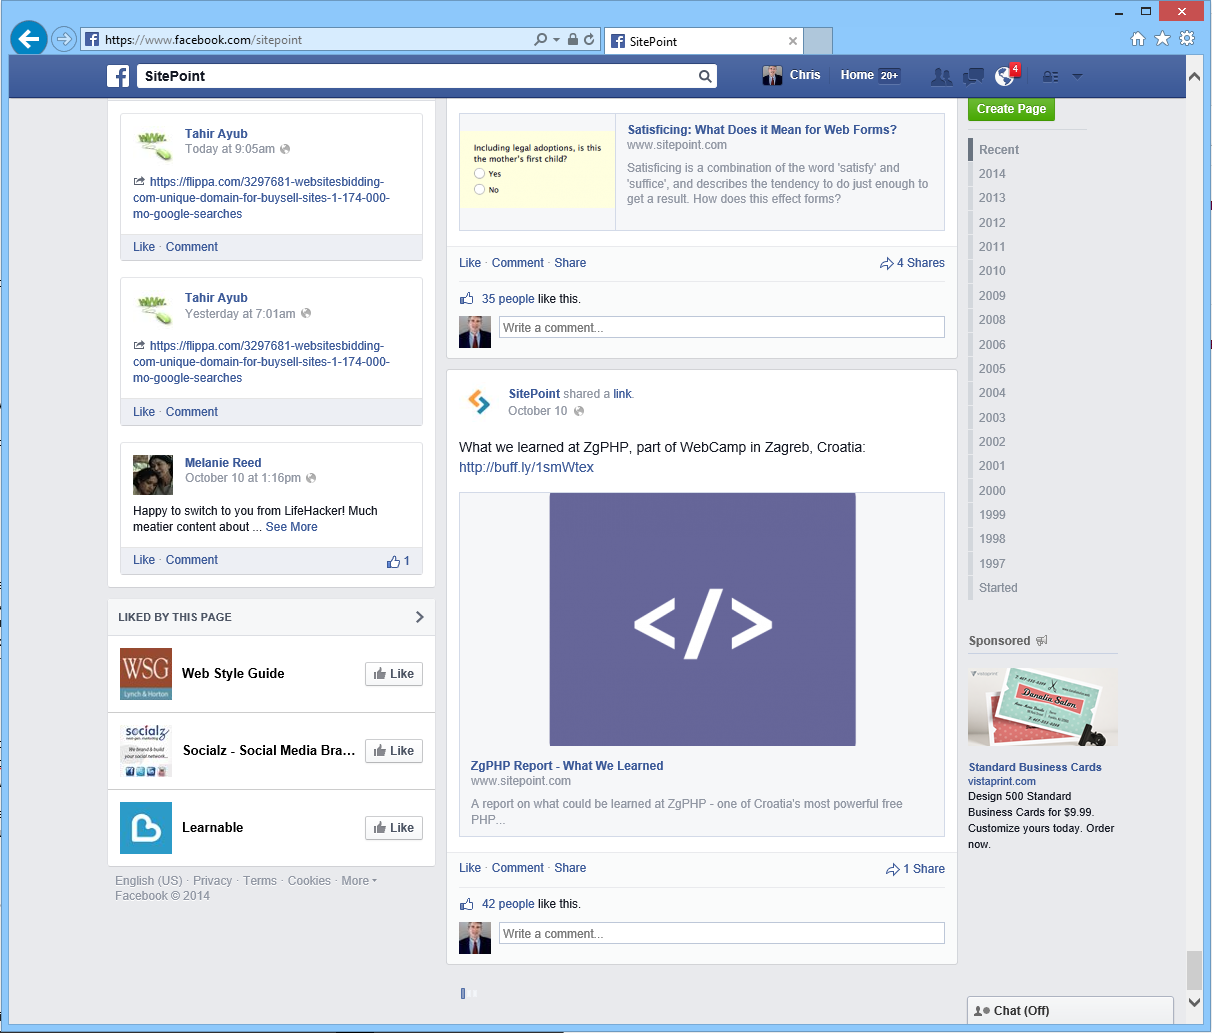 Facebook implemented infinite scroll long ago